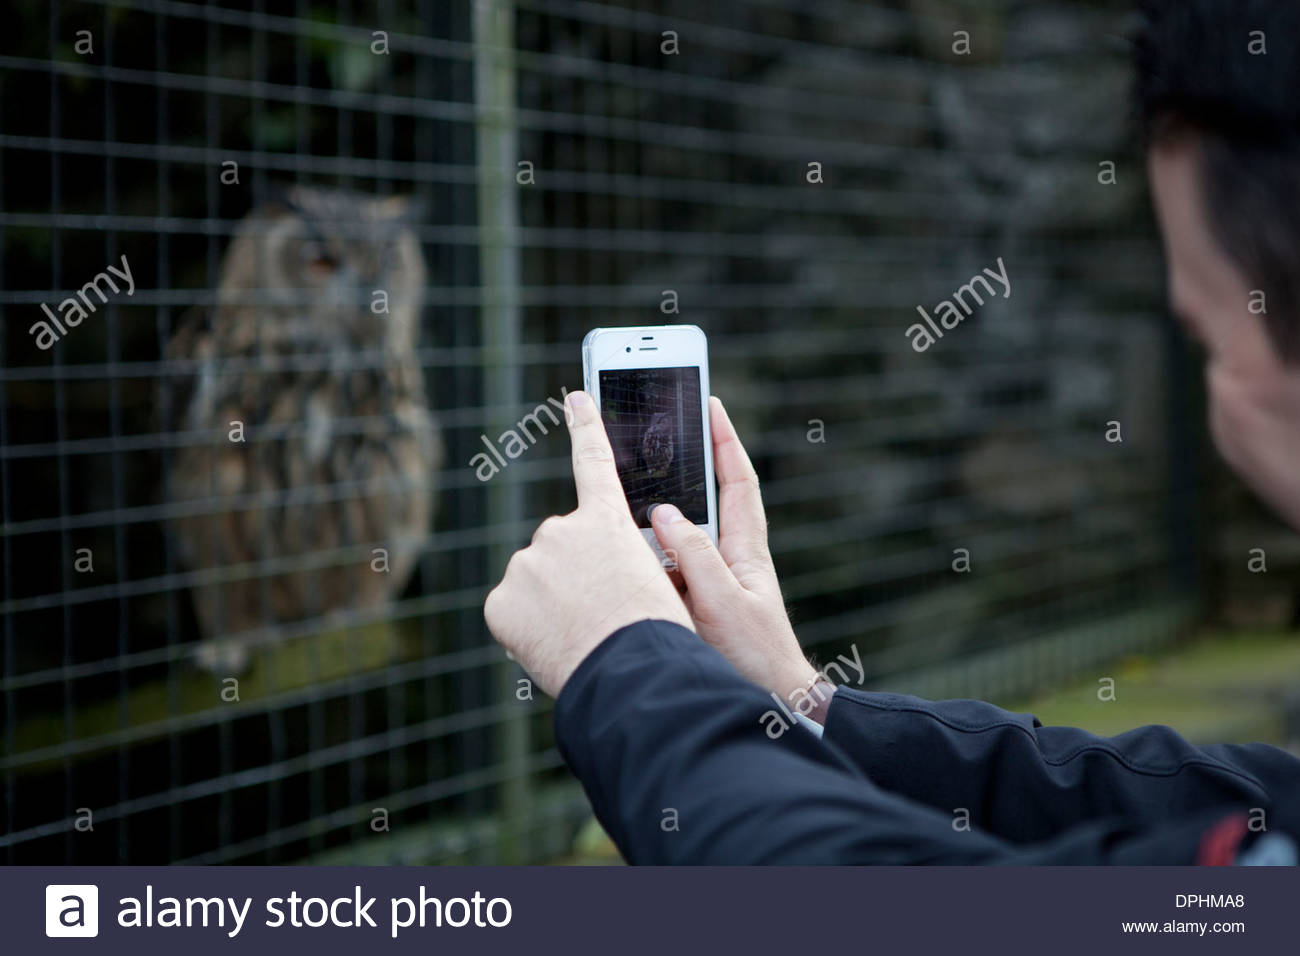 Visitor to a falconry centre using a smartphone camera to capture an image of an owl in captivity. - Stock Image